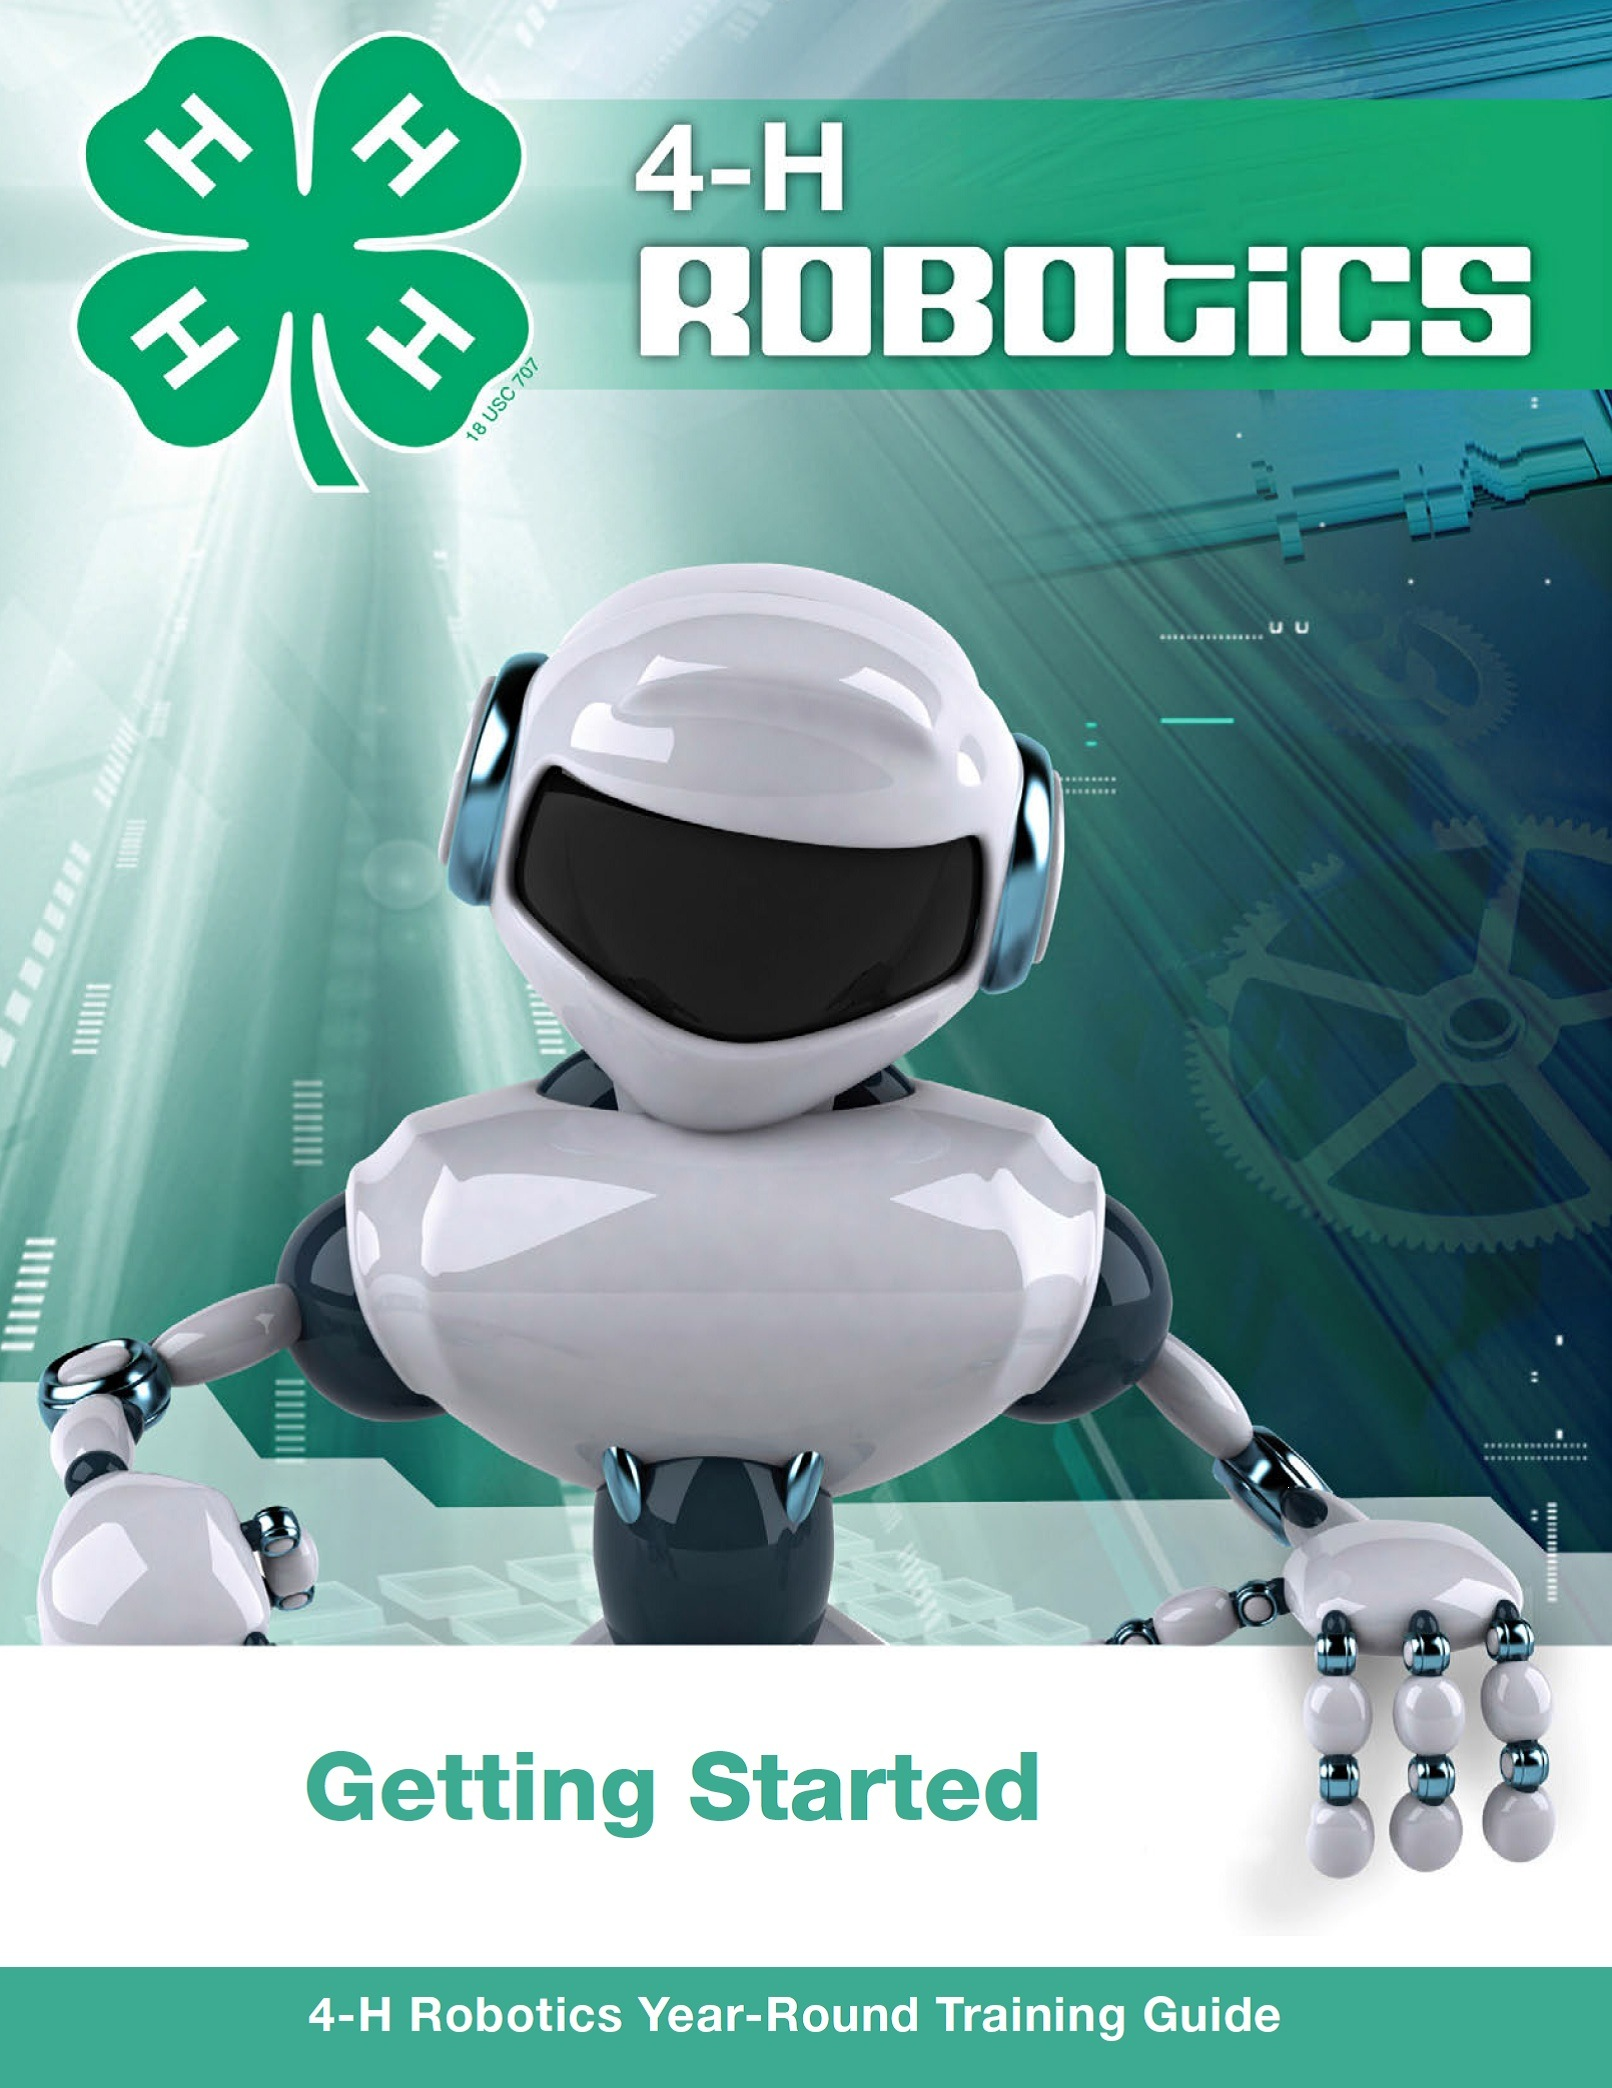 Robotics – Getting Started Guide from 4-H Youth Development Experts